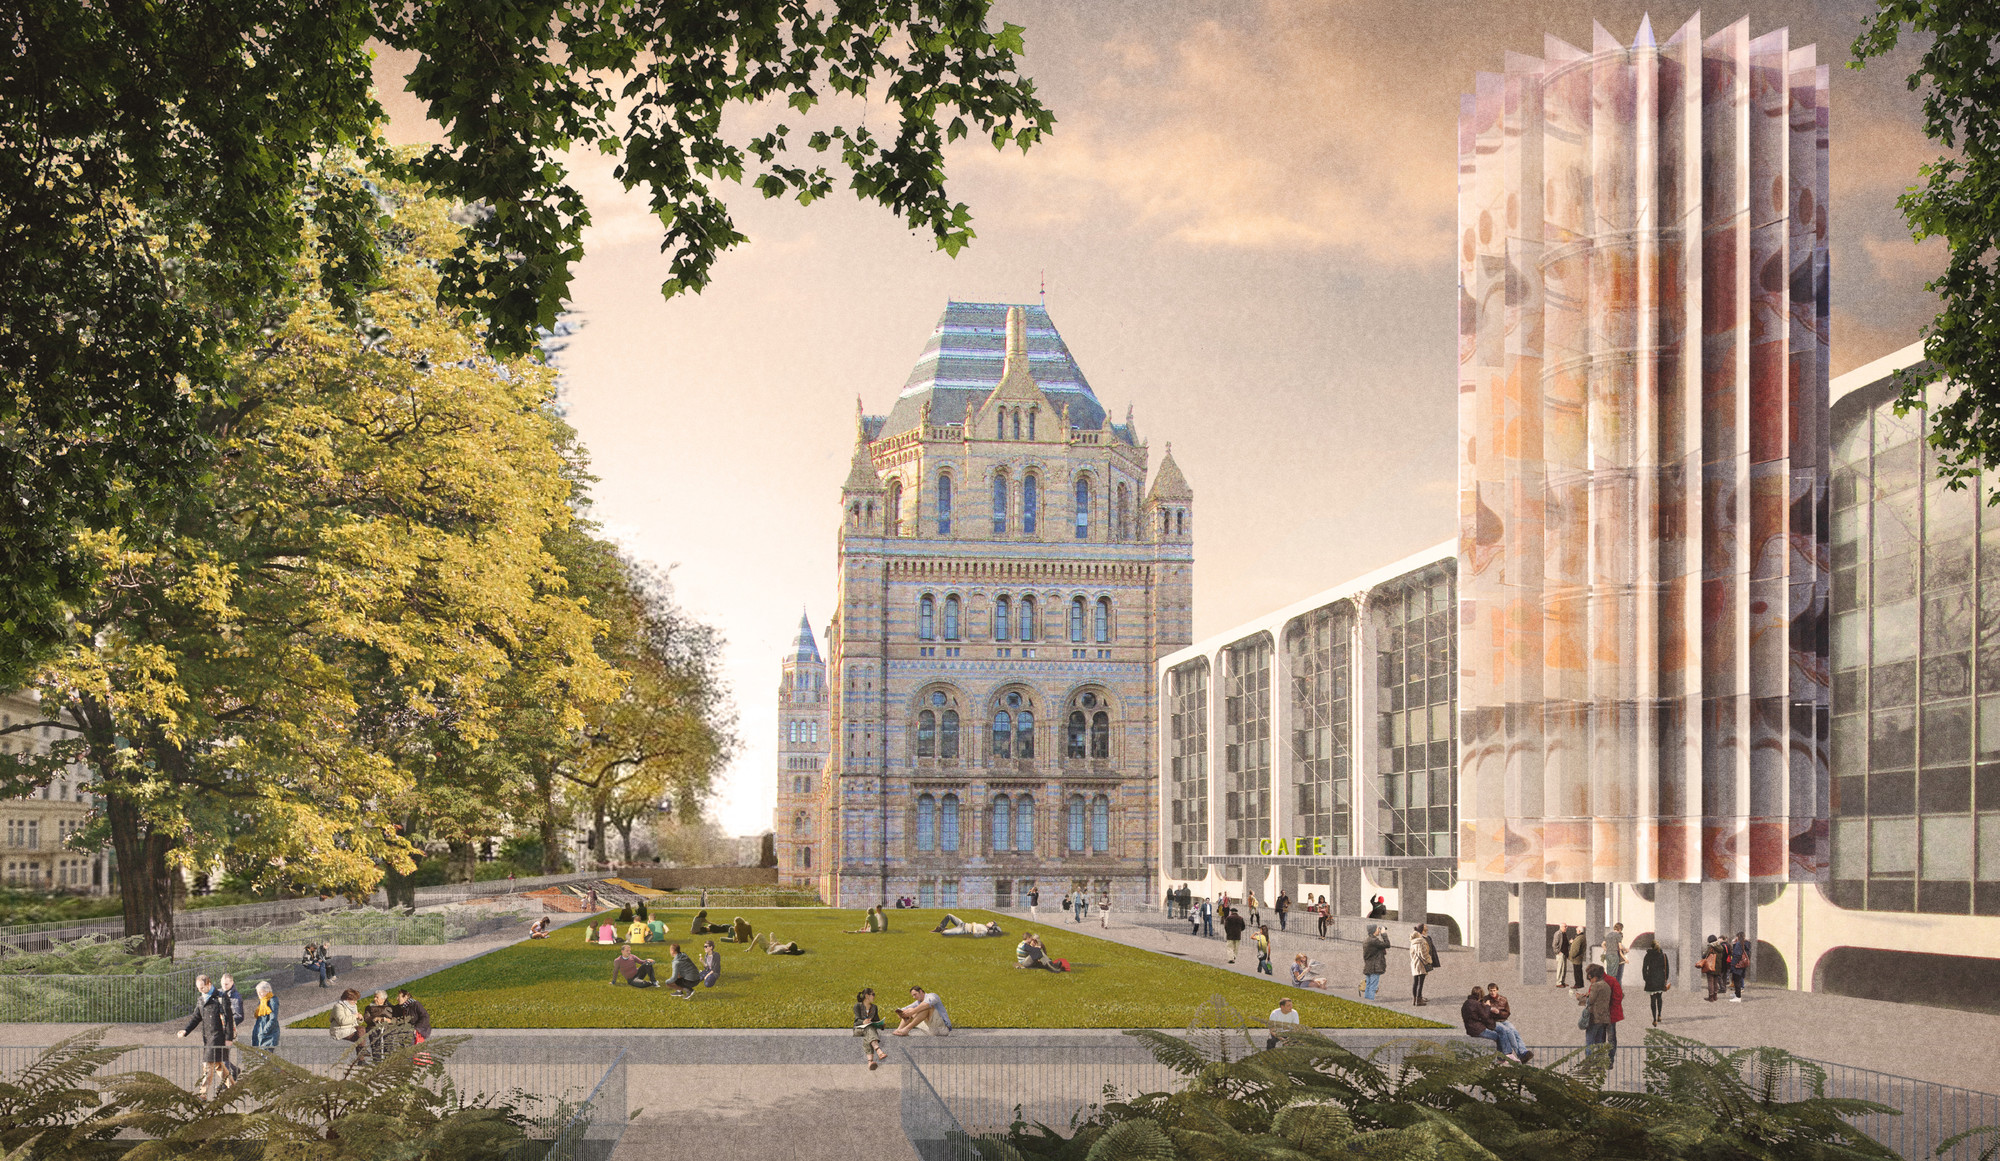 Designs Unveiled for London's Natural History Museum Urban Redevelopment, Team 1. Image Courtesy of Natural History Museum